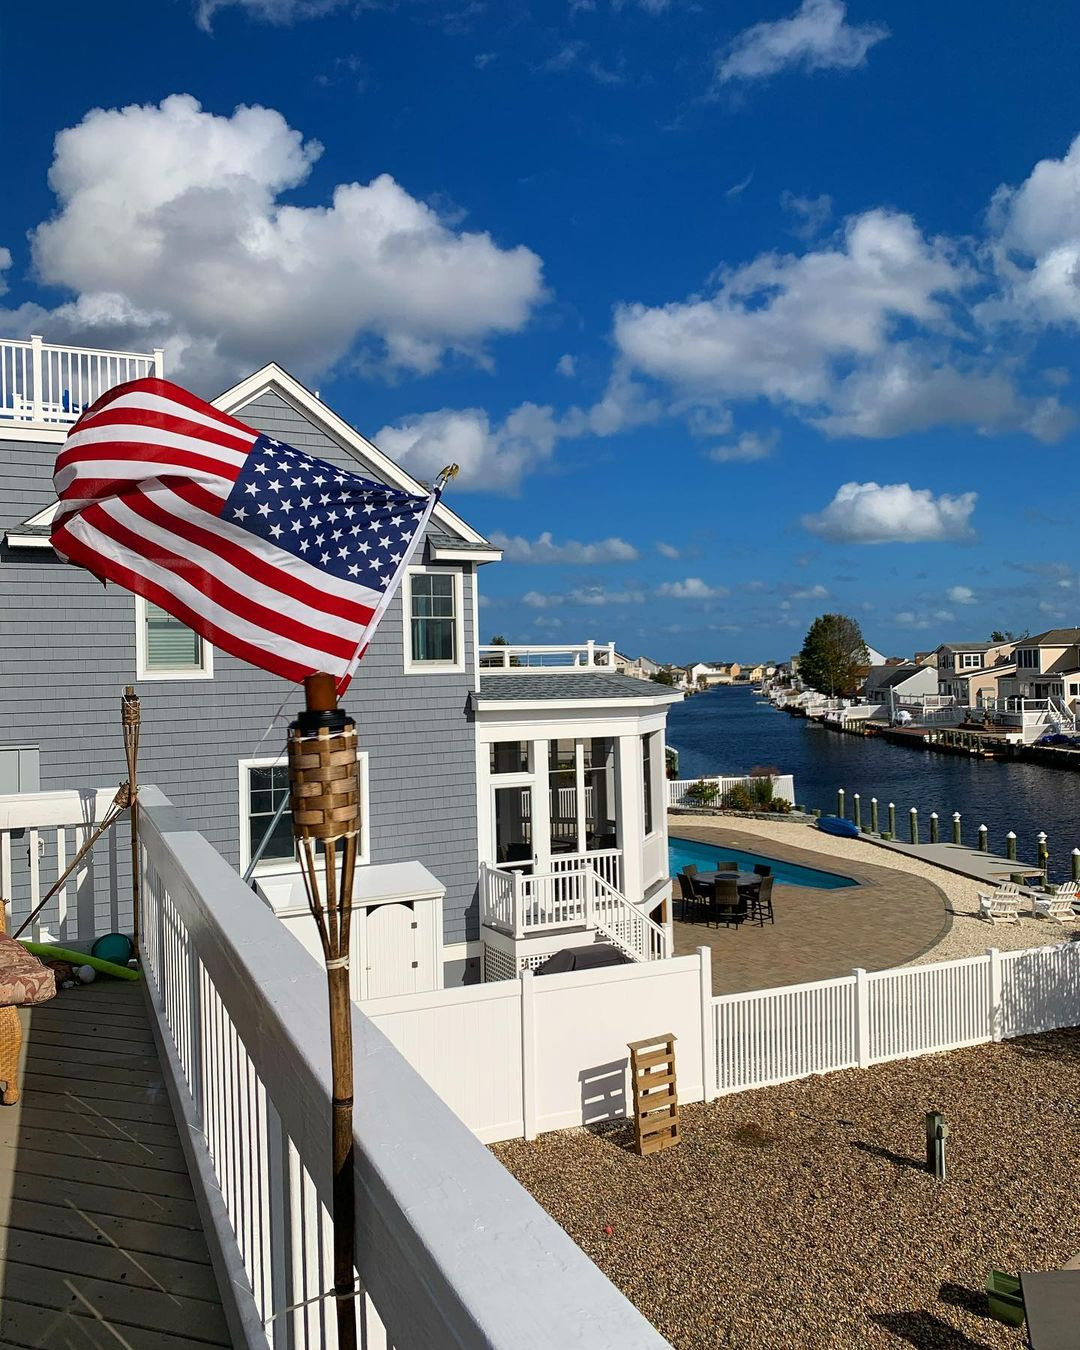 LBI Happy Veterans Day to our soldiers, both past and present  We owe you our thanks…